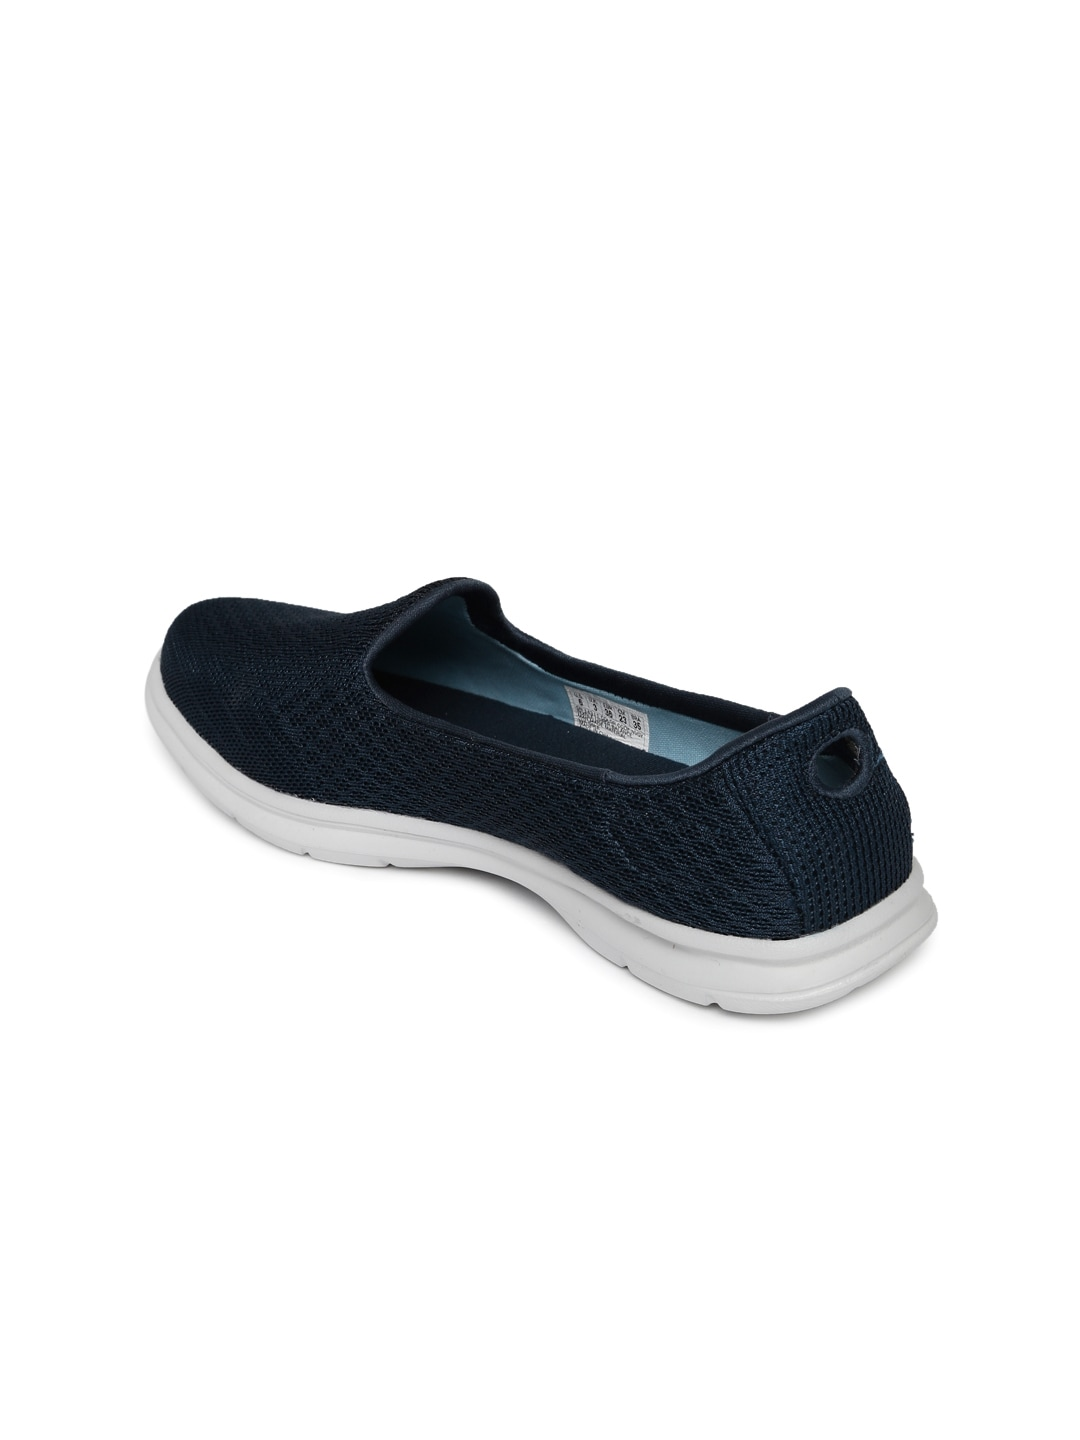 skechers walking sandals. skechers walking sandals